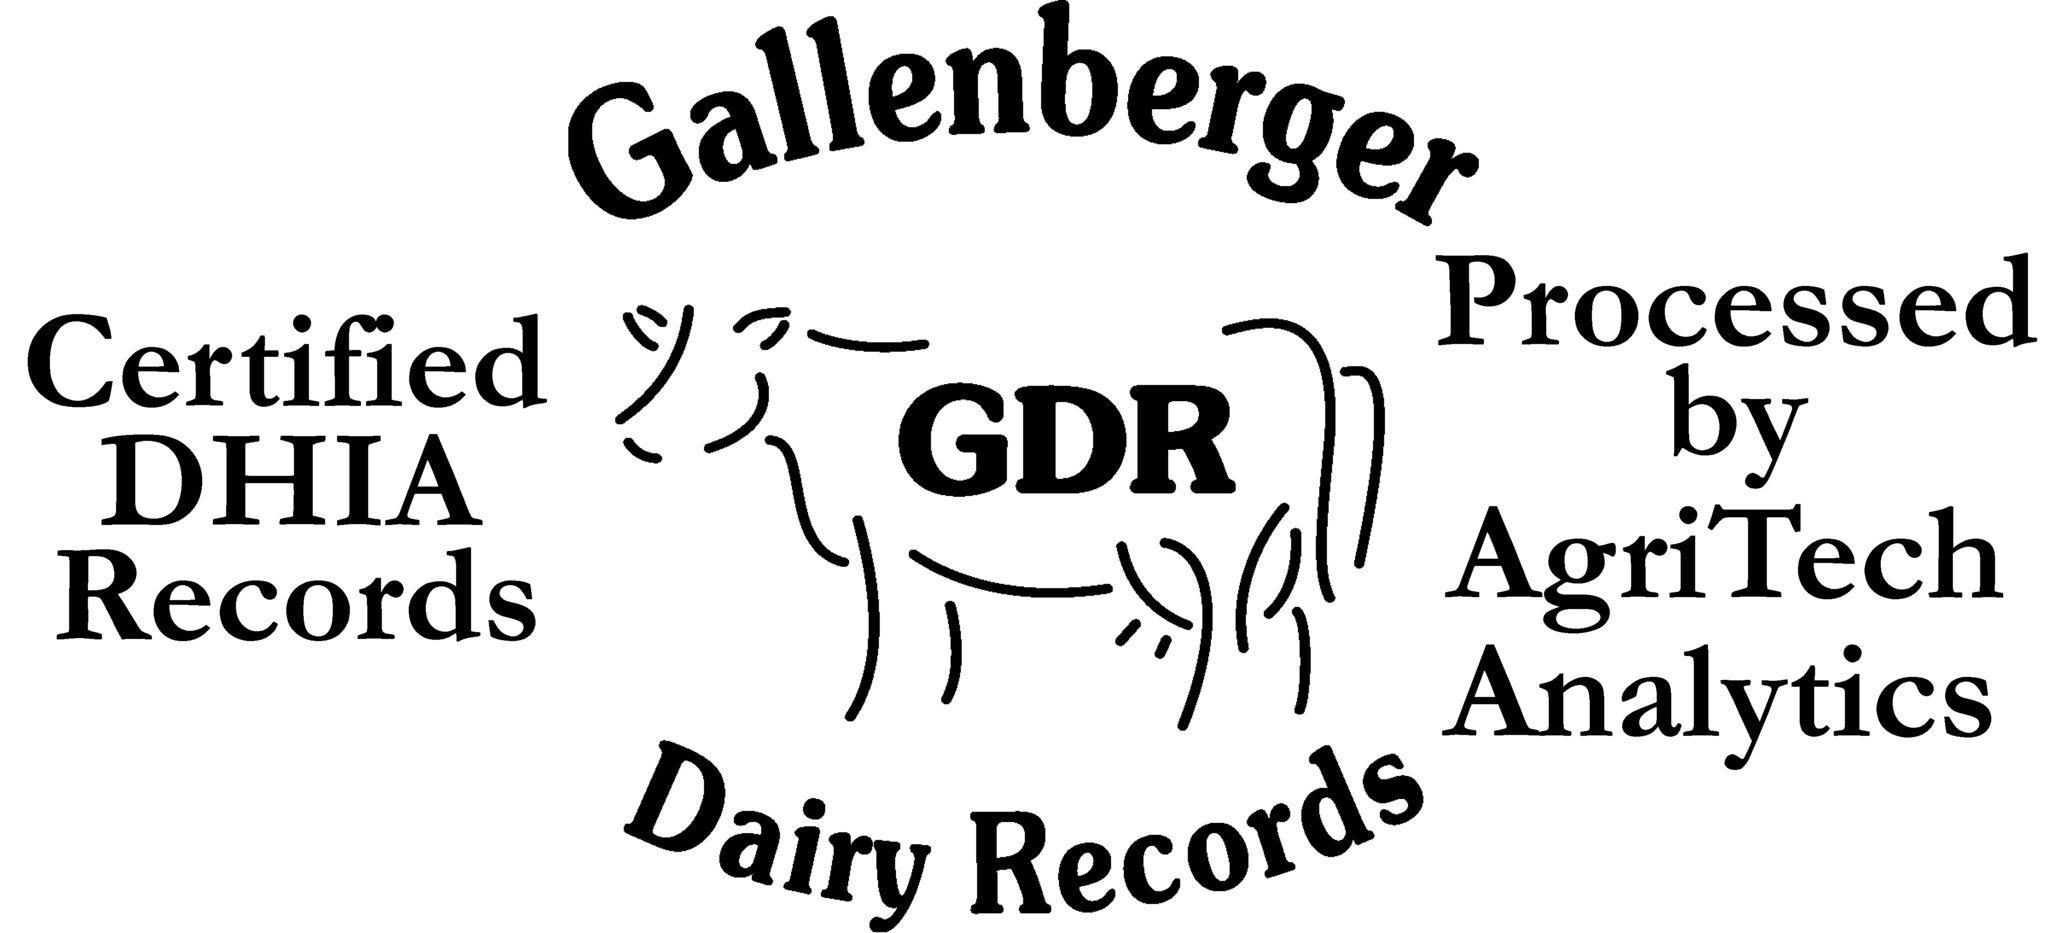 Gallenberger Dairy Records